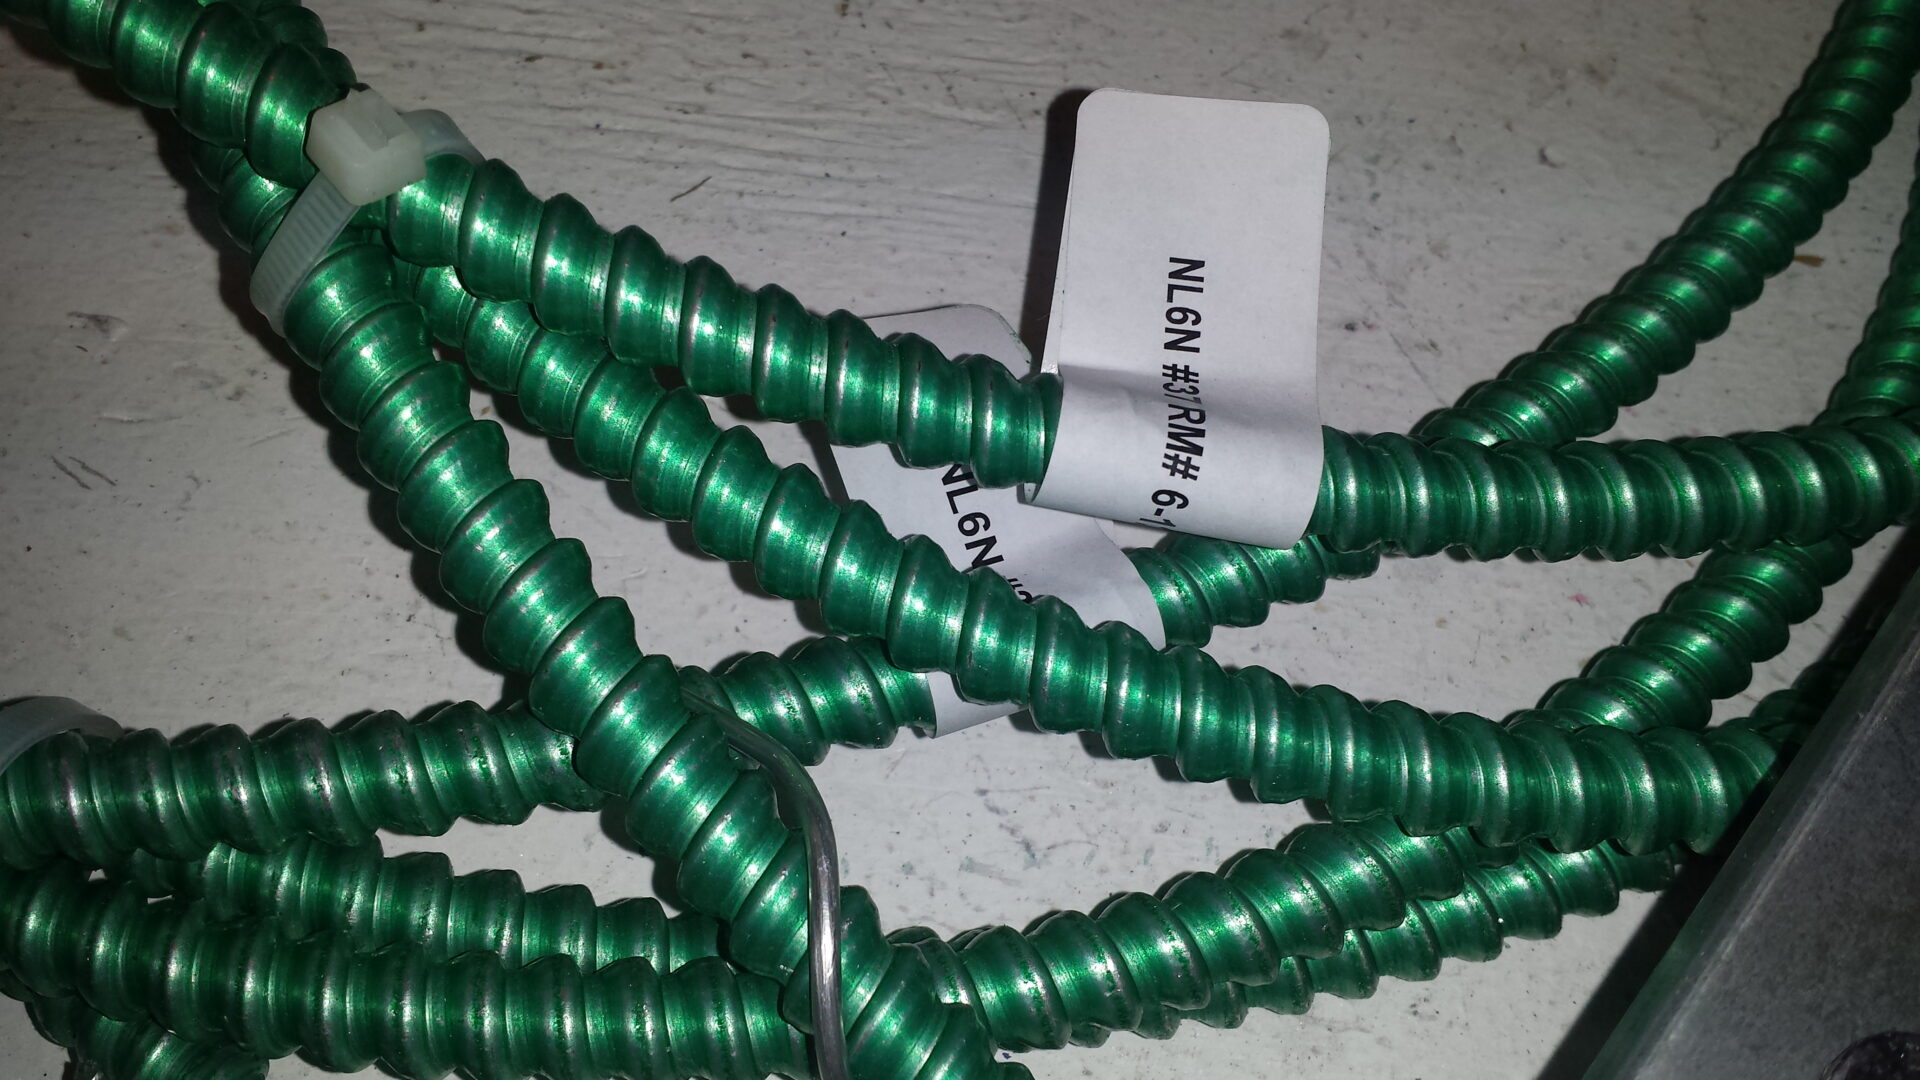 Green electrical component